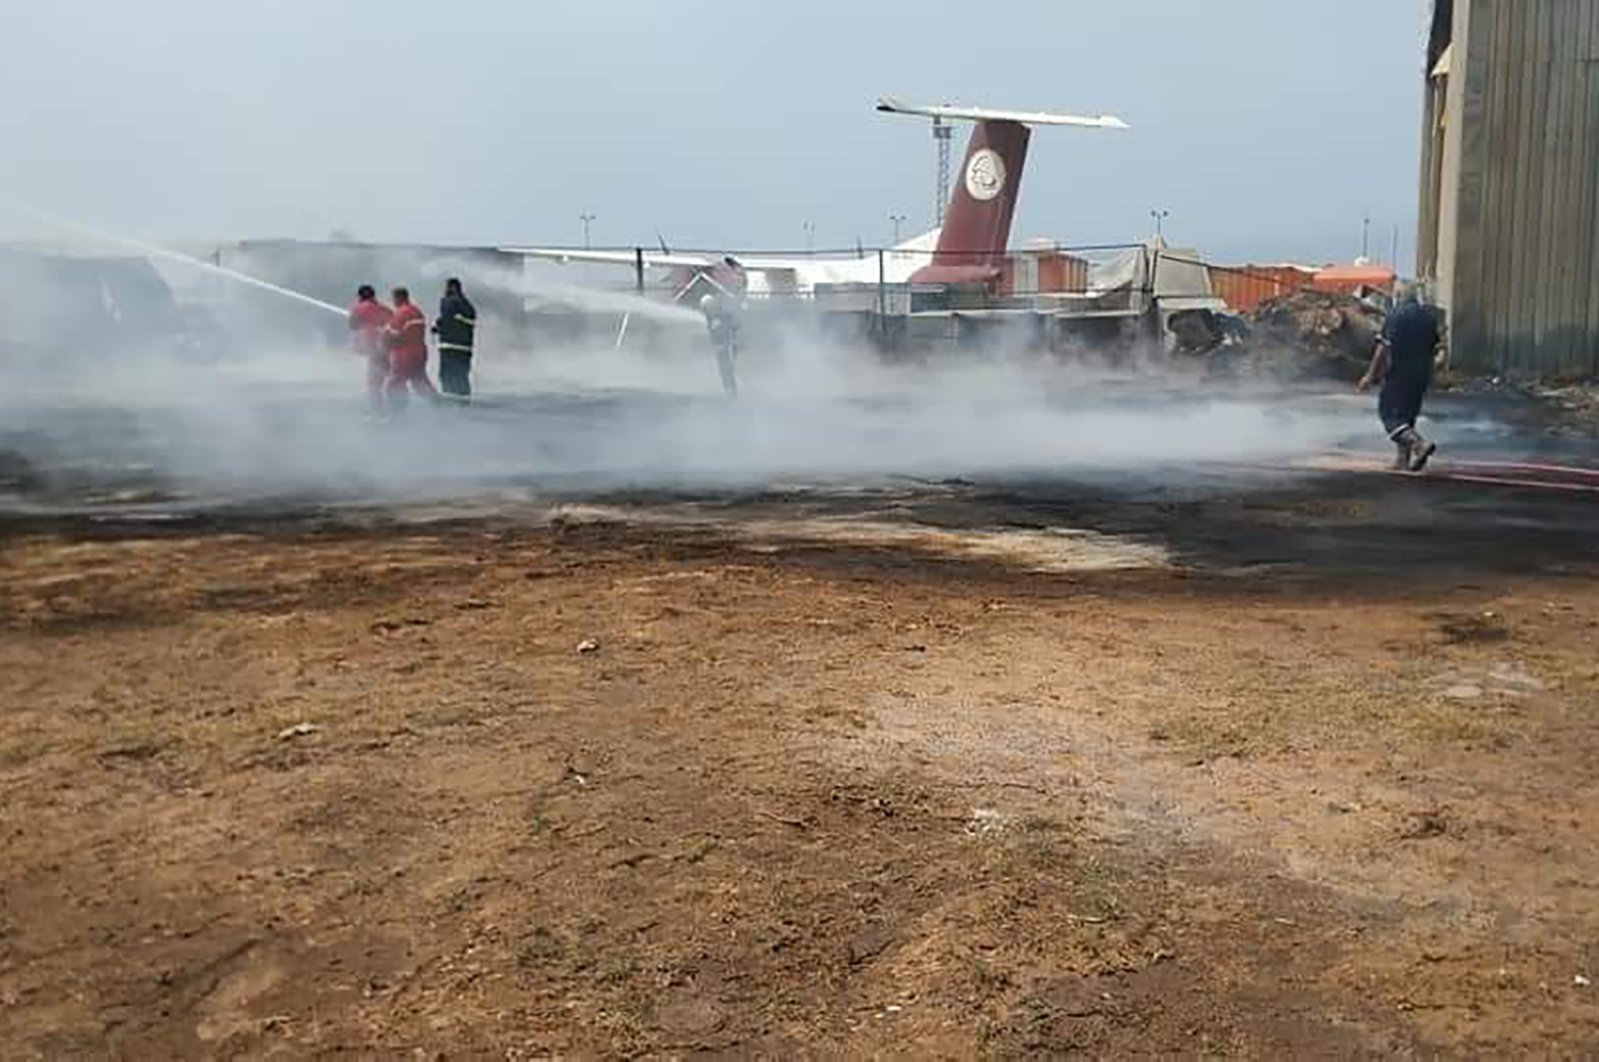 A handout picture released by the media office of Libya's UN-recognised Government of National Accord (GNA) on May 9, 2020 shows firefighters extinguishing a fire following an attack on the Mitiga airport in the capital Tripoli. (AFP Photo)